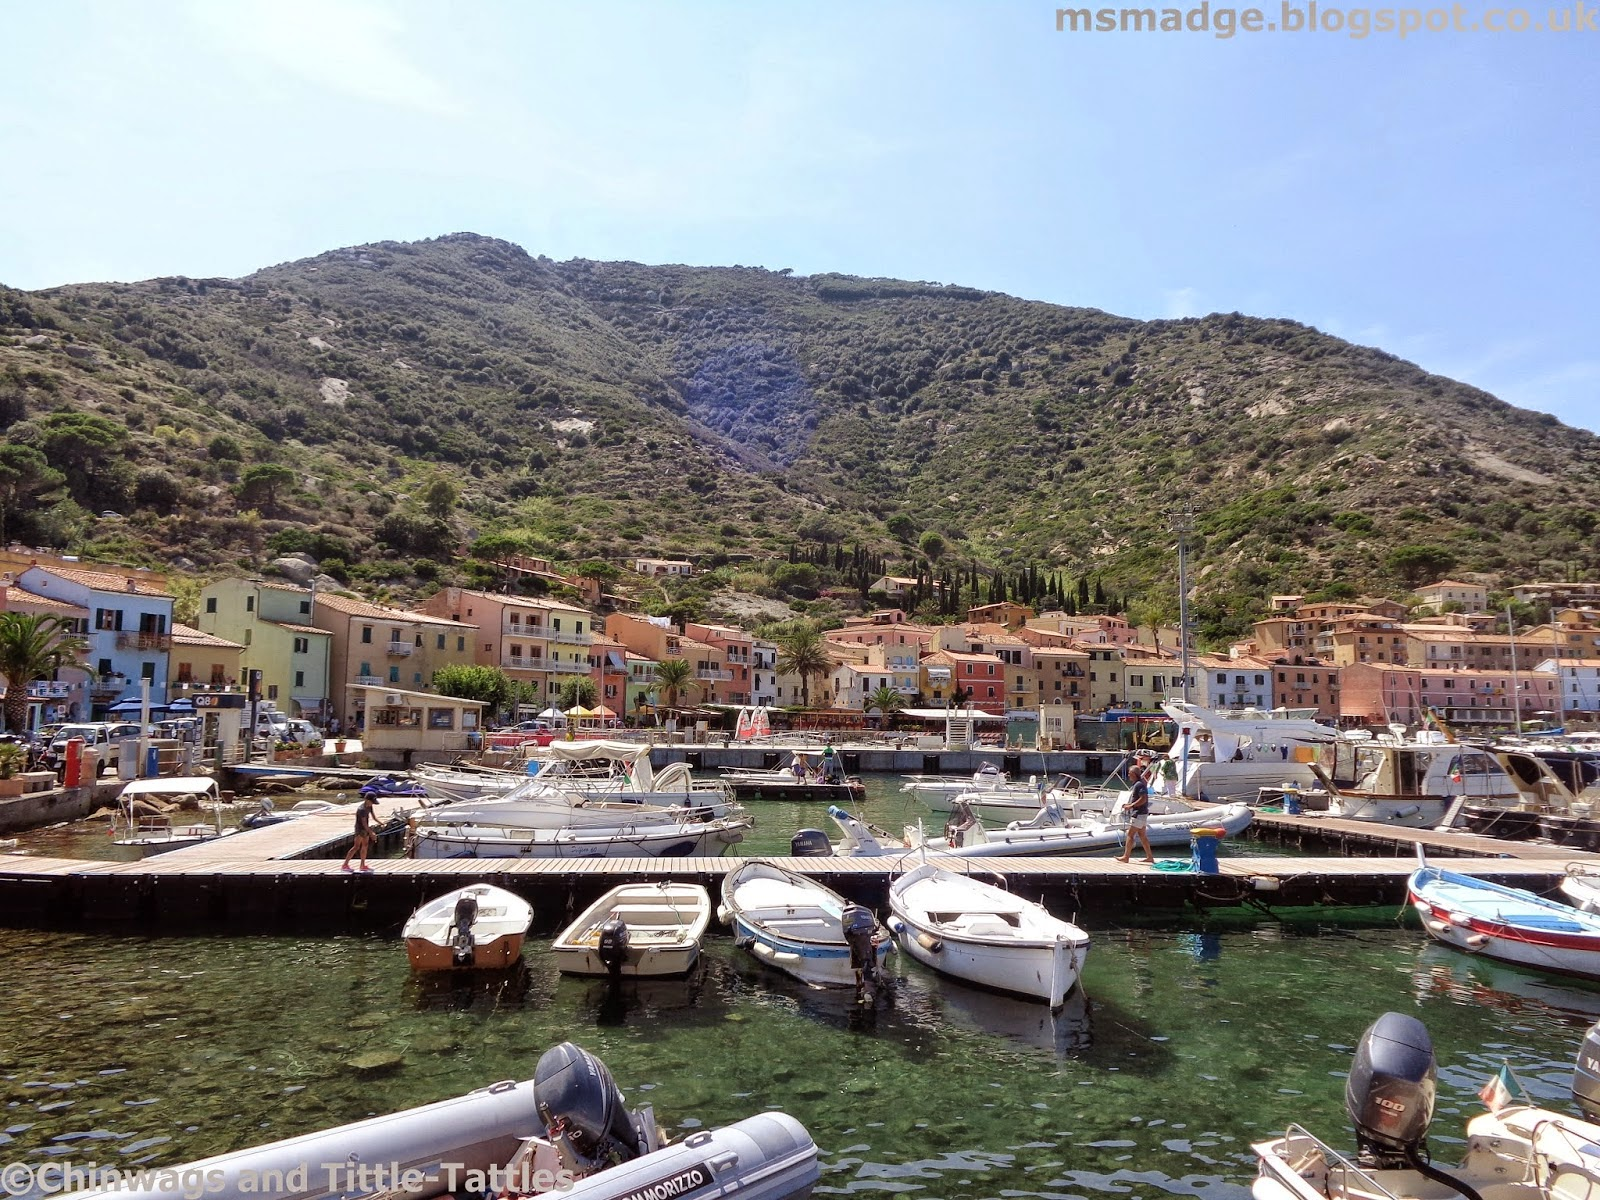 http://msmadge.blogspot.co.uk/2014/08/island-living-at-isola-del-giglio.html